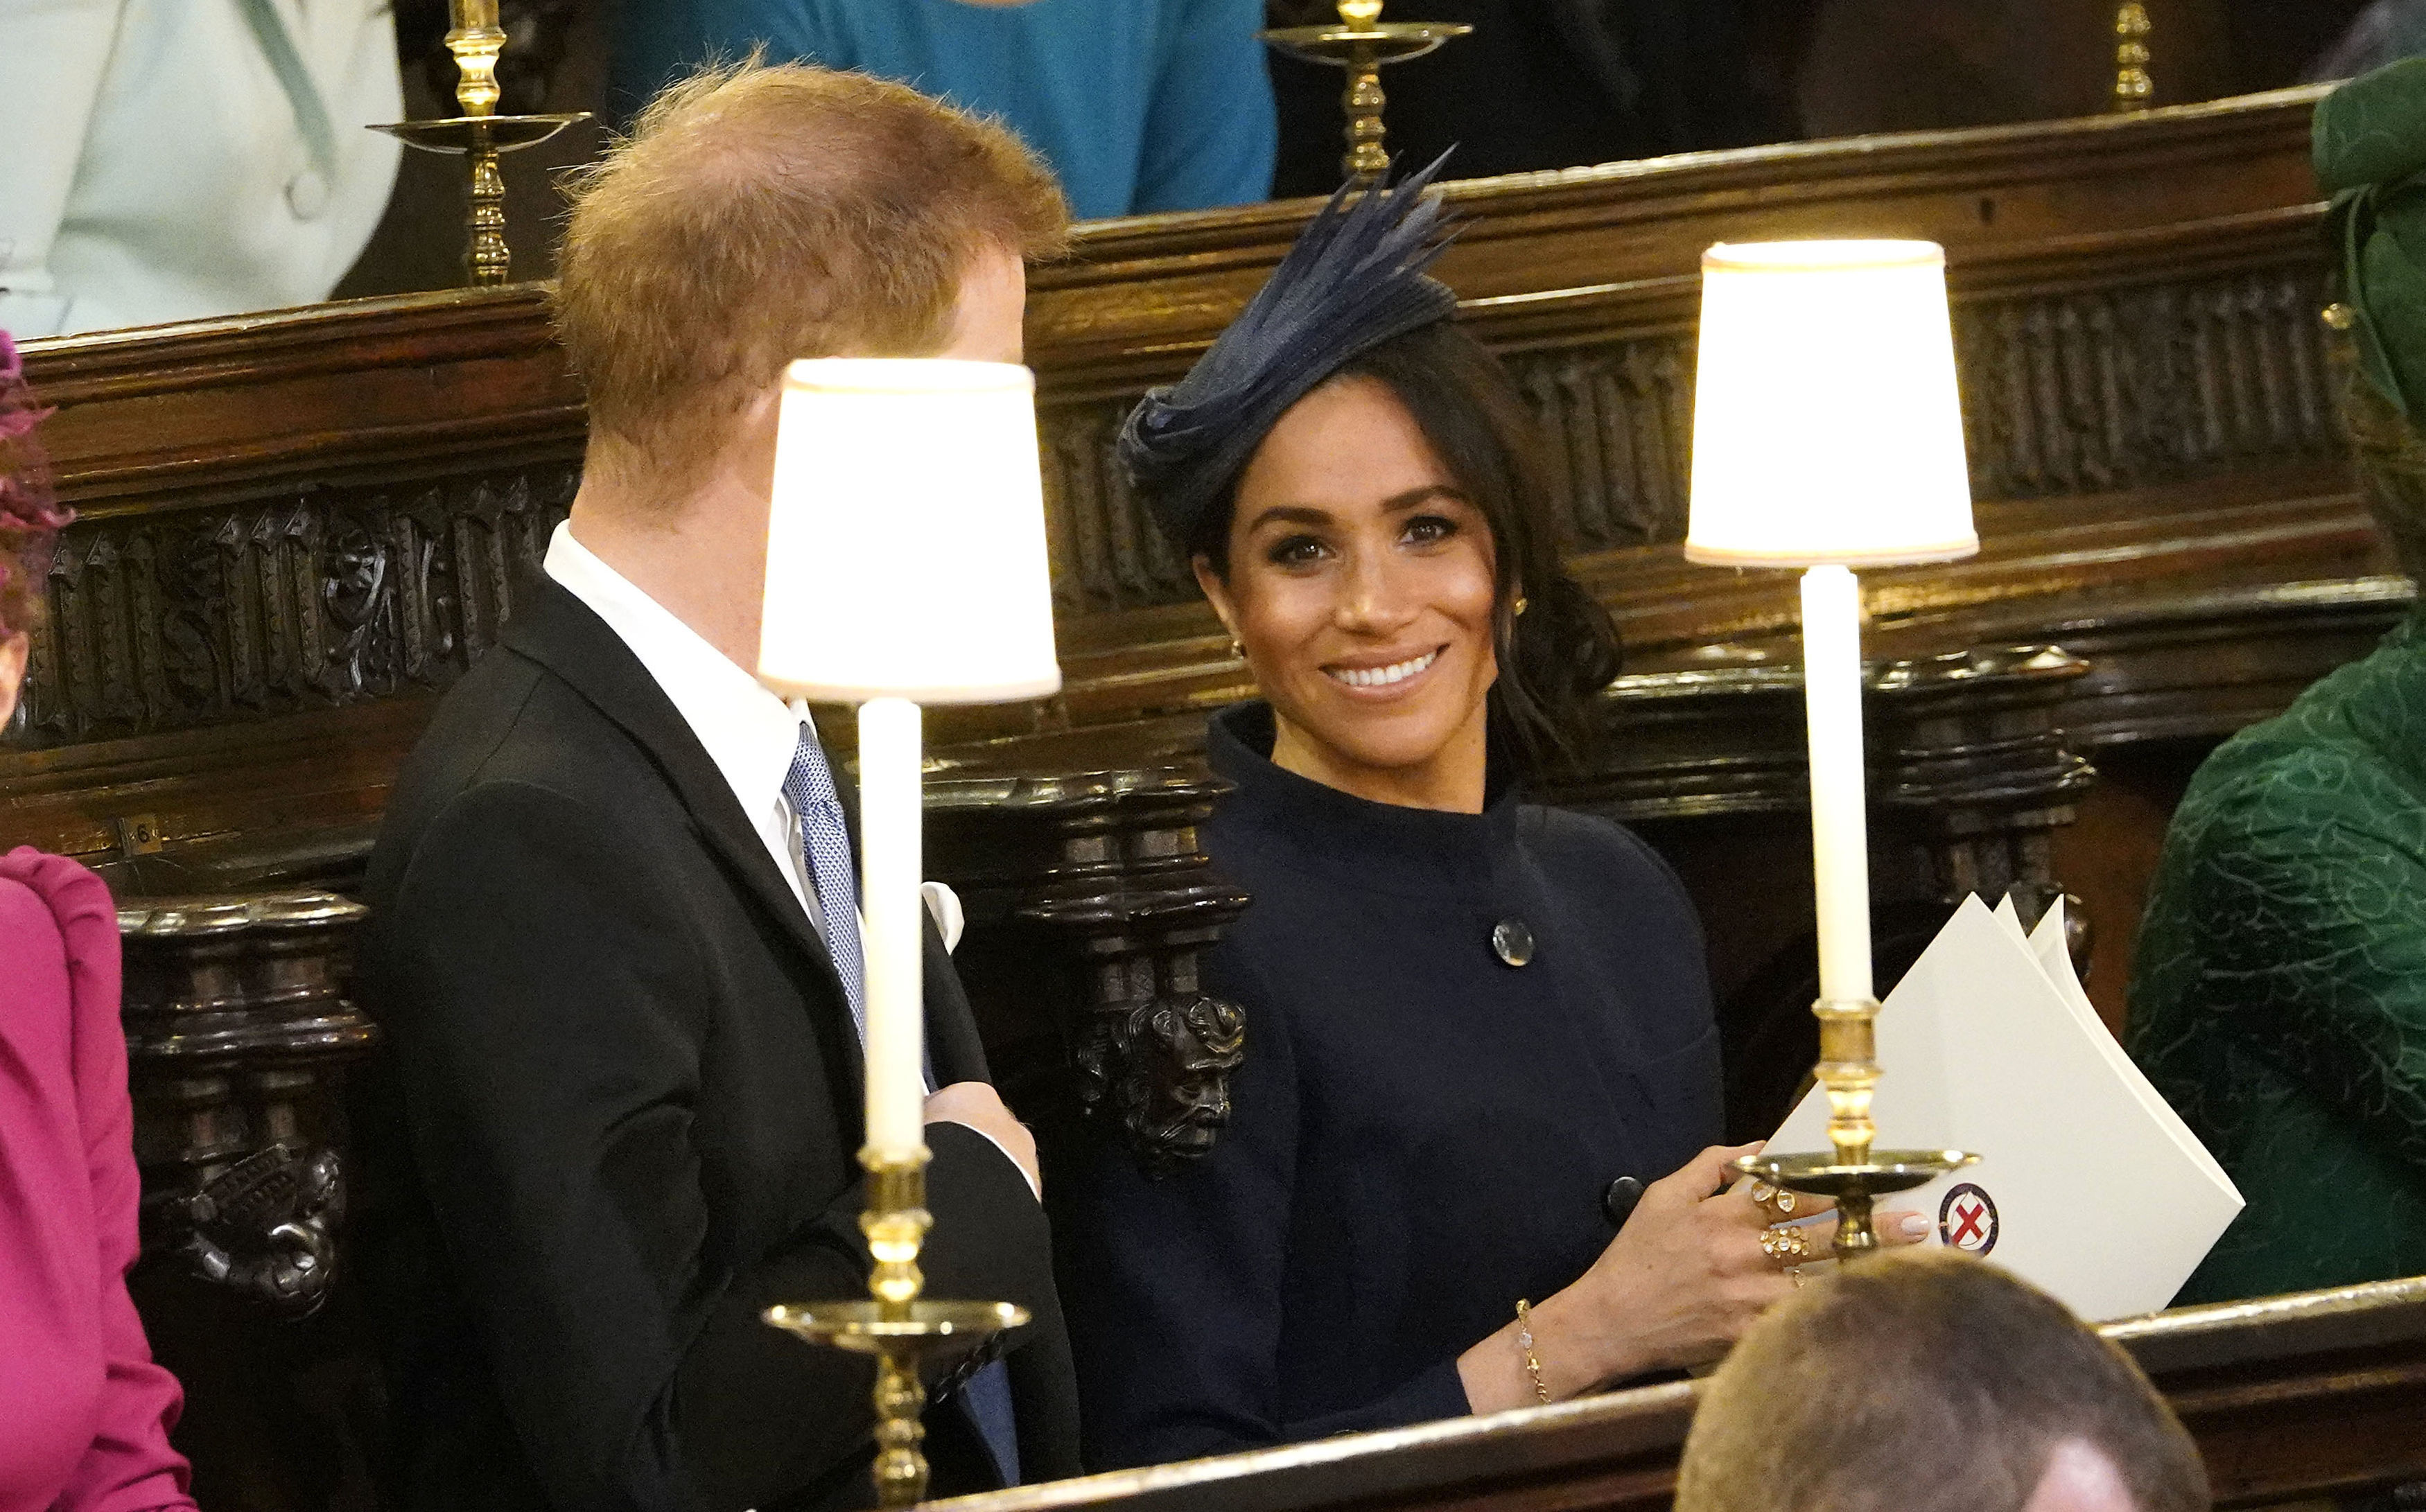 <div class='meta'><div class='origin-logo' data-origin='none'></div><span class='caption-text' data-credit='Danny Lawson/Pool via AP'>Prince Harry and Meghan, Duchess of Sussex take their seats ahead of the wedding of Princess Eugenie of York and Jack Brooksbank in St George's Chapel, Windsor Castle.</span></div>